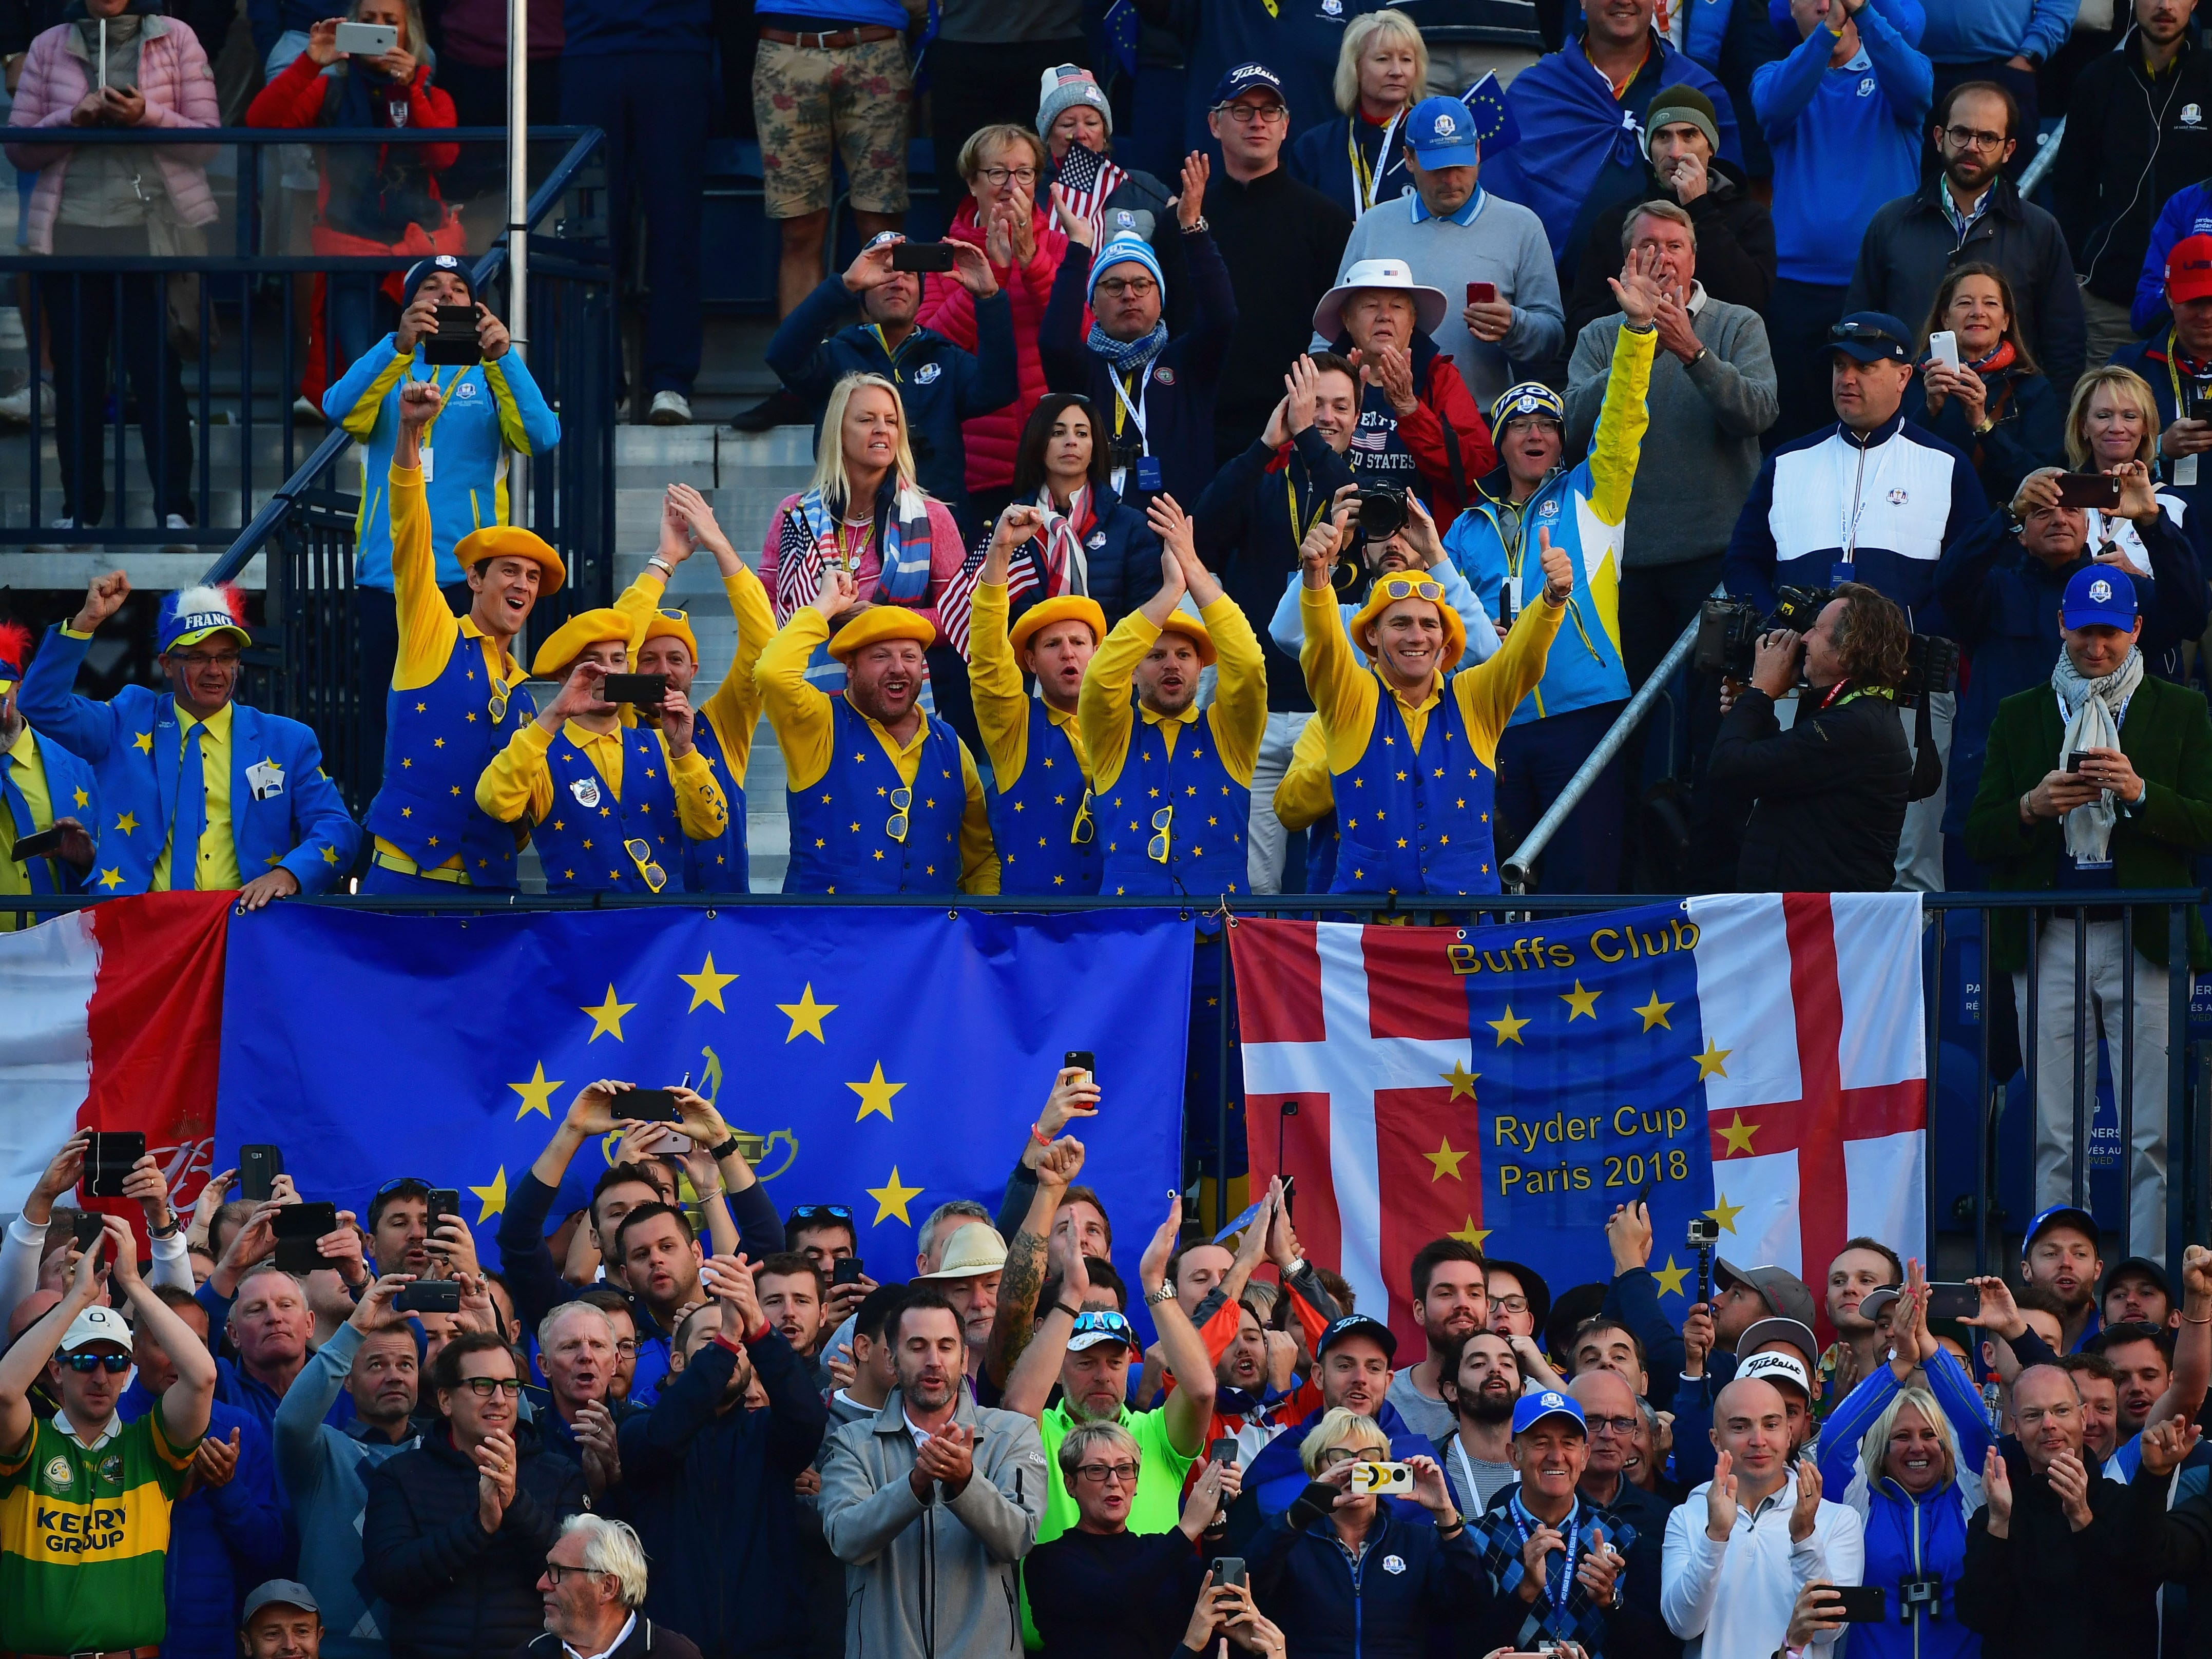 Fans show their support during the morning fourball matches of the 2018 Ryder Cup at Le Golf National on Sept. 28.